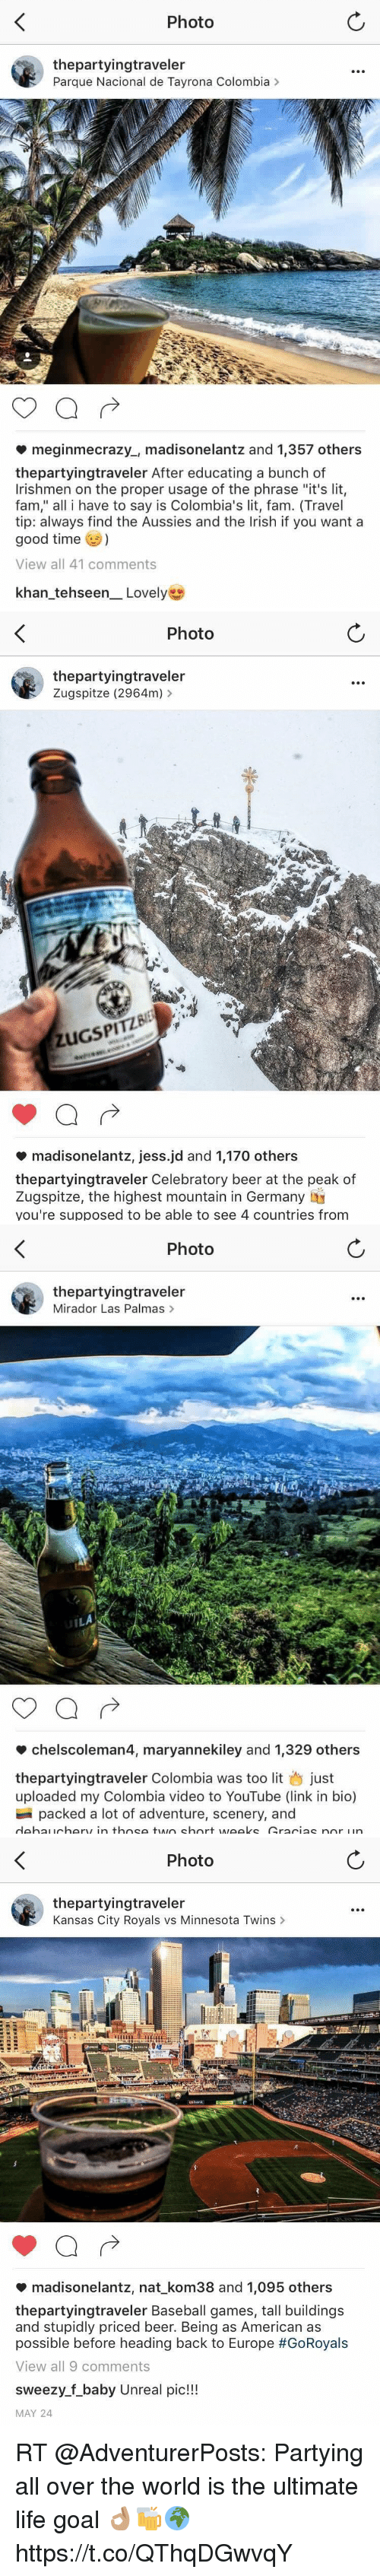 """Unrealism: Photo  thepartyingtraveler  Parque Nacional de Tayrona Colombia >  meginmecrazy., madisonelantz and 1,357 others  thepartyingtraveler After educating a bunch of  Irishmen on the proper usage of the phrase """"it's lit,  fam,"""" all i have to say is Colombia's lit, fam. (Travel  tip: always find the Aussies and the Irish if you want a  good time  View all 41 comments  khan-tehseen-Lovely   Photo  thepartyingtraveler  Zugspitze (2964m) >  ZUGSPITZBI  madisonelantz, jess.jd and 1,170 others  thepartyingtraveler Celebratory beer at the peak of  Zugspitze, the highest mountain in Germany IT  you're supposed to be able to see 4 countries from   Photo  thepartyingtraveler  Mirador Las Palmas>  IL  *chelscoleman4, maryannekiley and 1,329 others  thepartyingtraveler Colombia was too lit just  uploaded my Colombia video to YouTube (link in bio)  packed a lot of adventure, scenery, and   Photo  thepartyingtraveler  Kansas City Royals vs Minnesota Twins >  madisonelantz, nat-kom38 and 1,095 others  thepartyingtraveler Baseball games, tall buildings  and stupidly priced beer. Being as American as  possible before heading back to Europe #GoRoyals  View all 9 comments  sweezy.f_baby Unreal pic!!!  MAY 24 RT @AdventurerPosts: Partying all over the world is the ultimate life goal 👌🏽🍻🌍 https://t.co/QThqDGwvqY"""